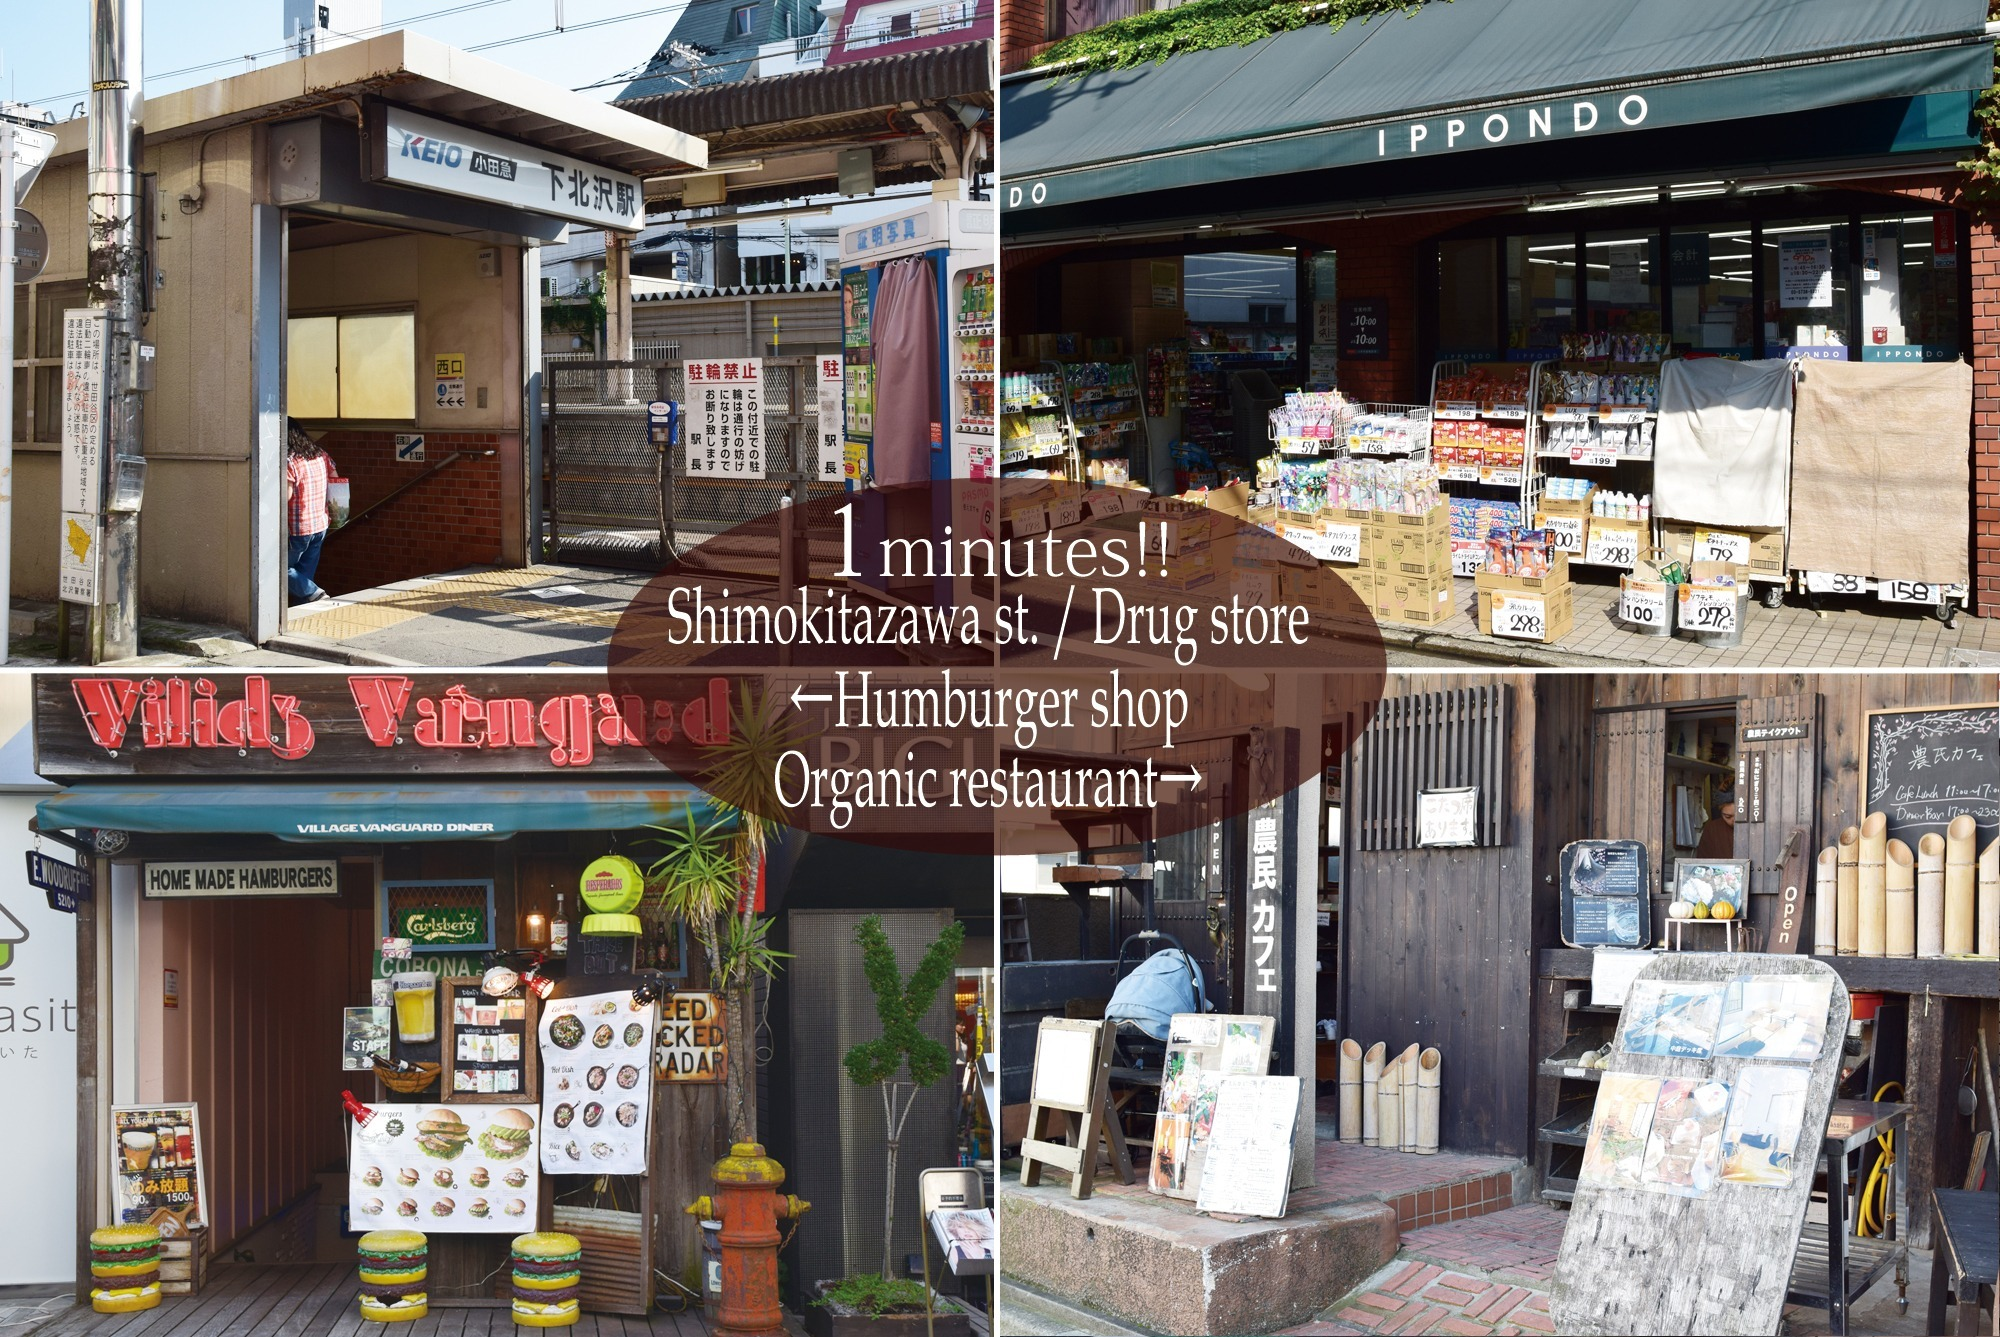 1 minute walk from Shimokitazawa Station West Exit! There are many restaurants and drug stores nearby.